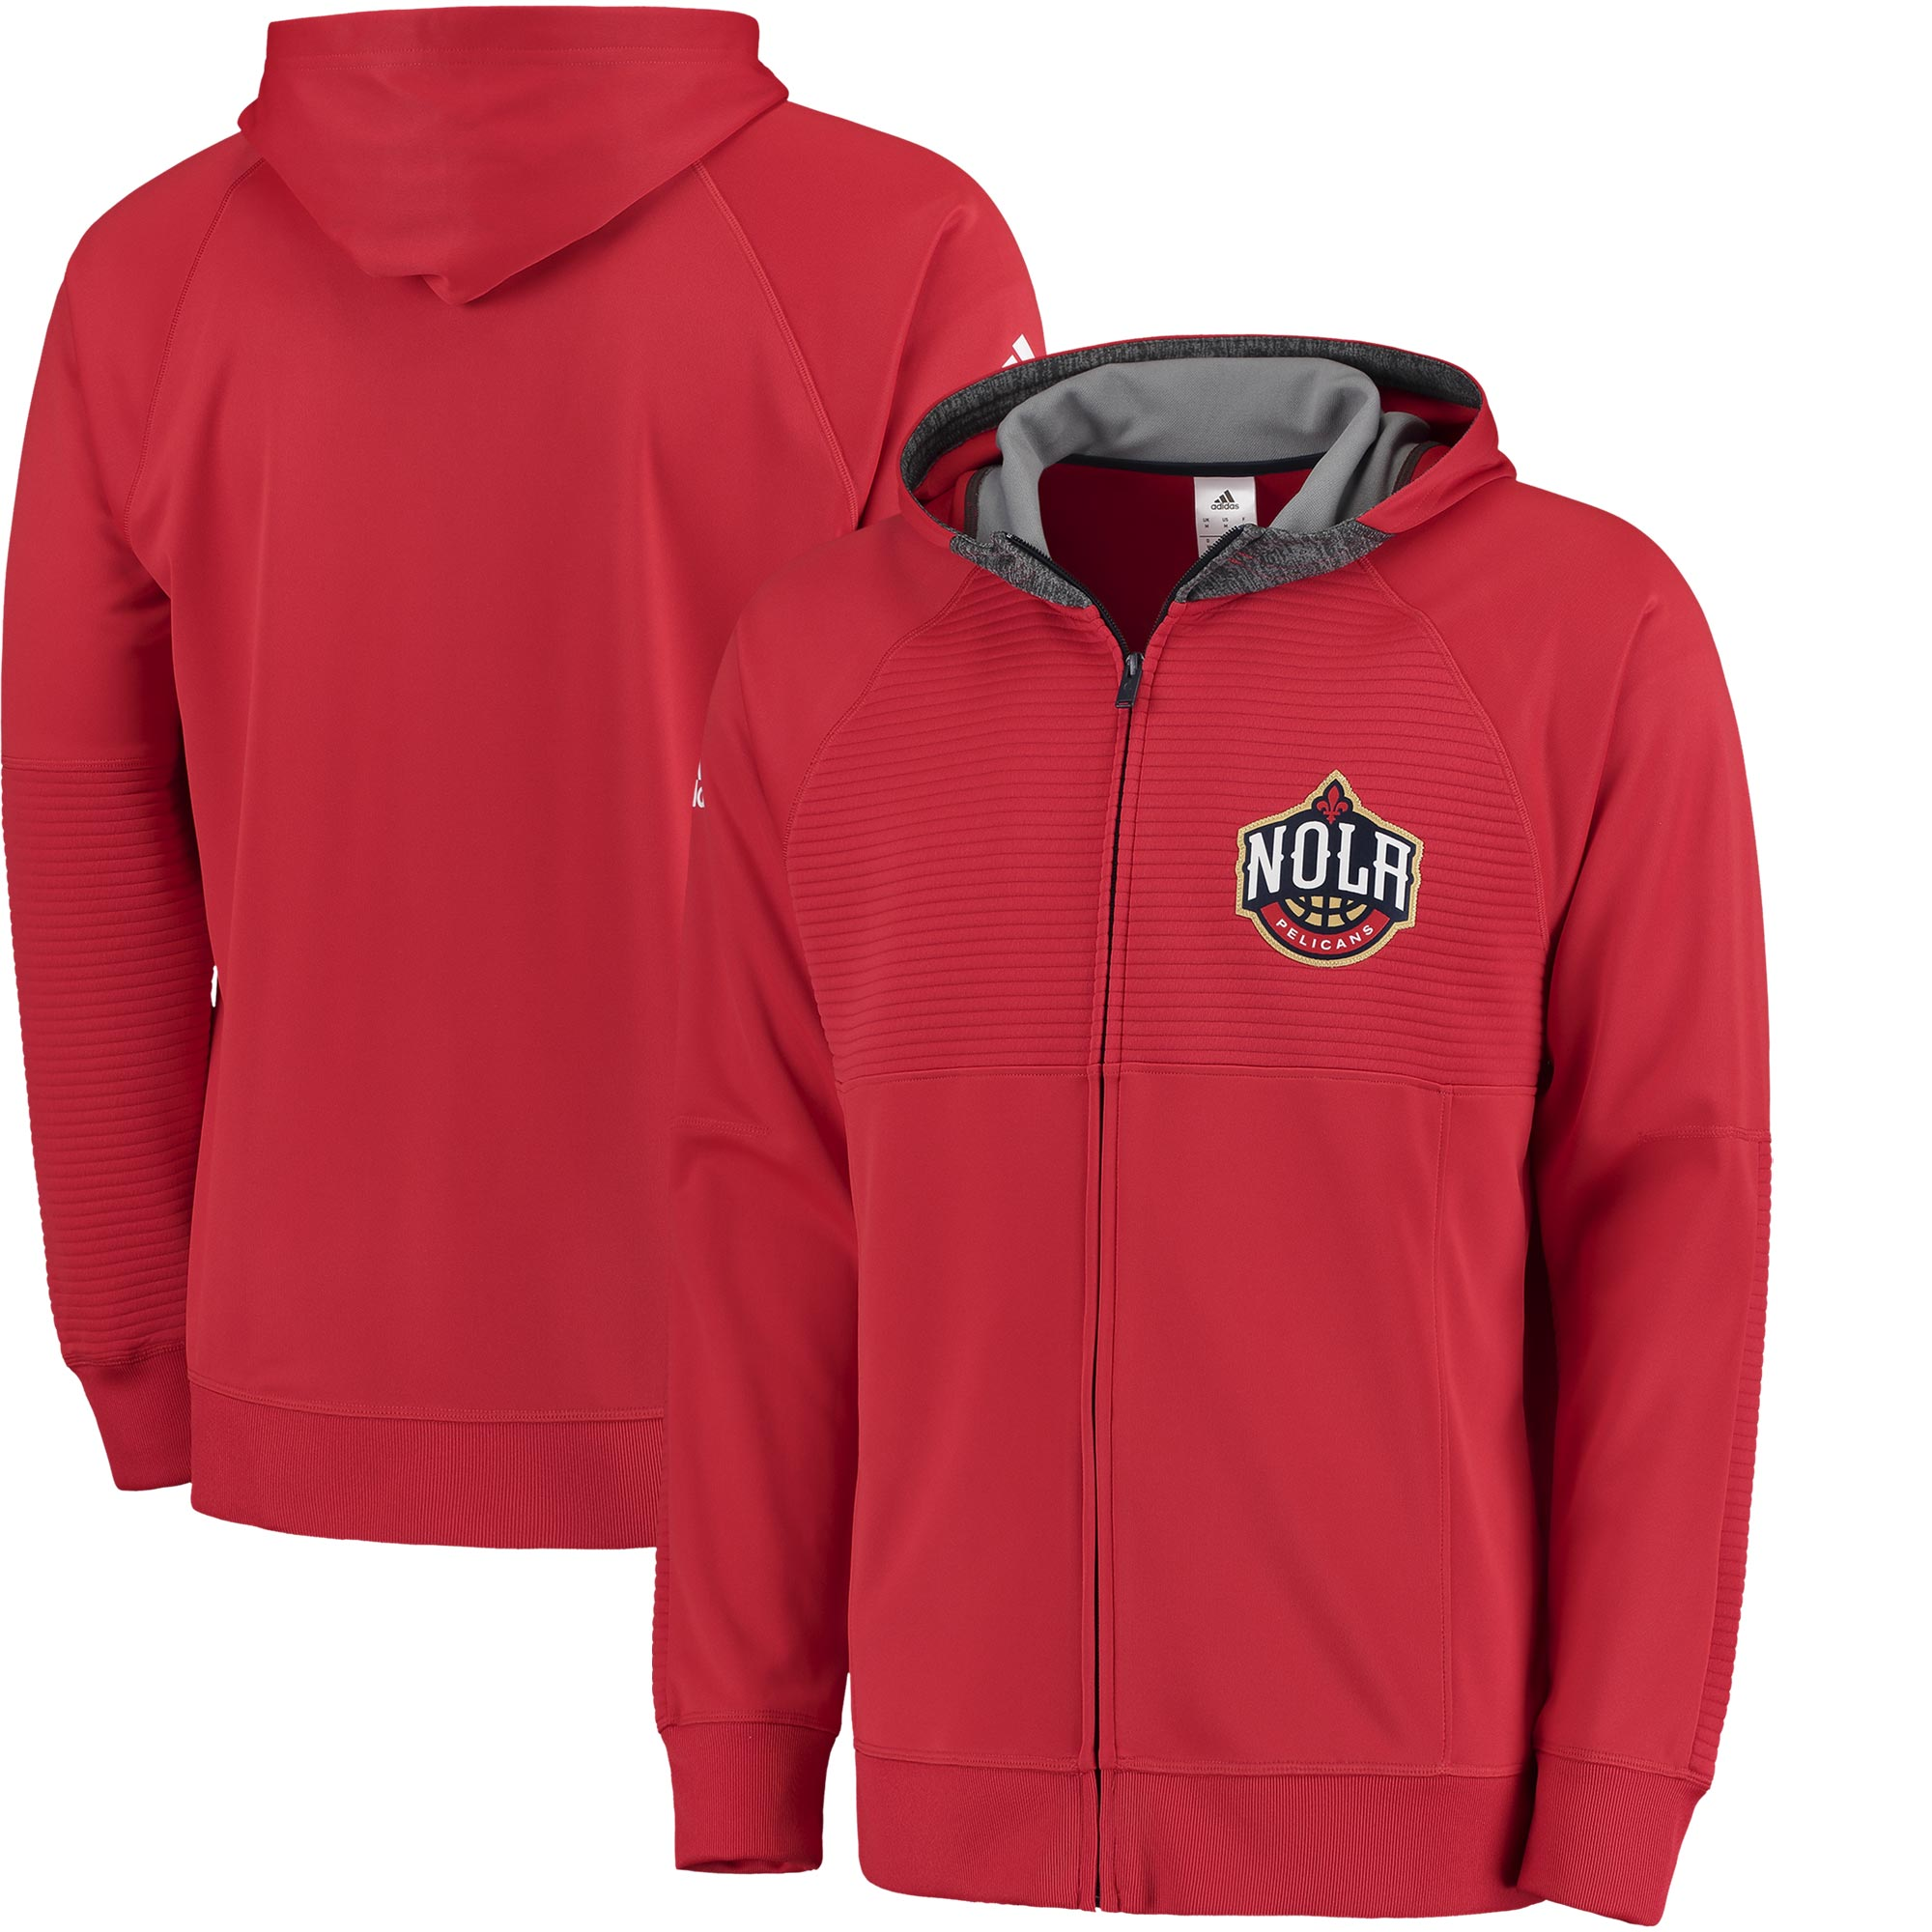 New Orleans Pelicans adidas 2016 Pre-Game Full-Zip Hooded Jacket - Red